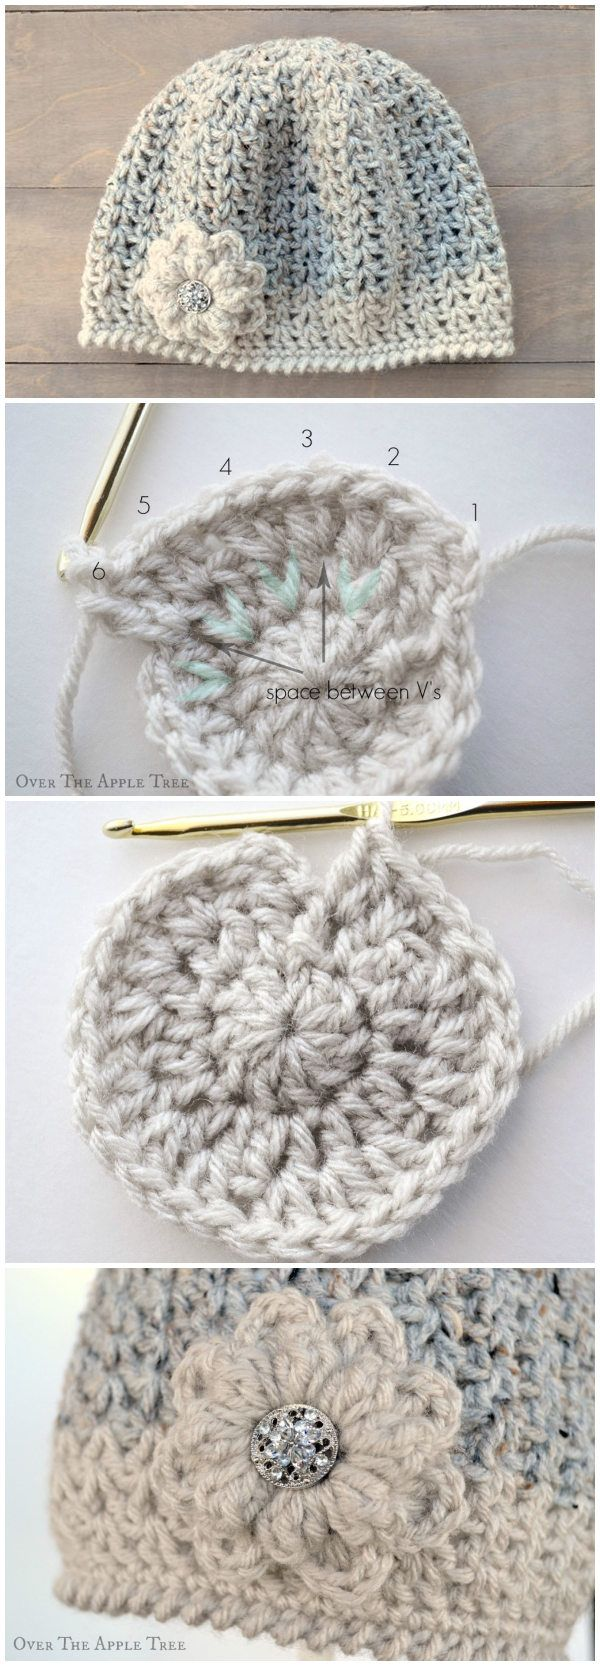 228 best gorros images on Pinterest | Crocheted baby hats, Crocheted ...